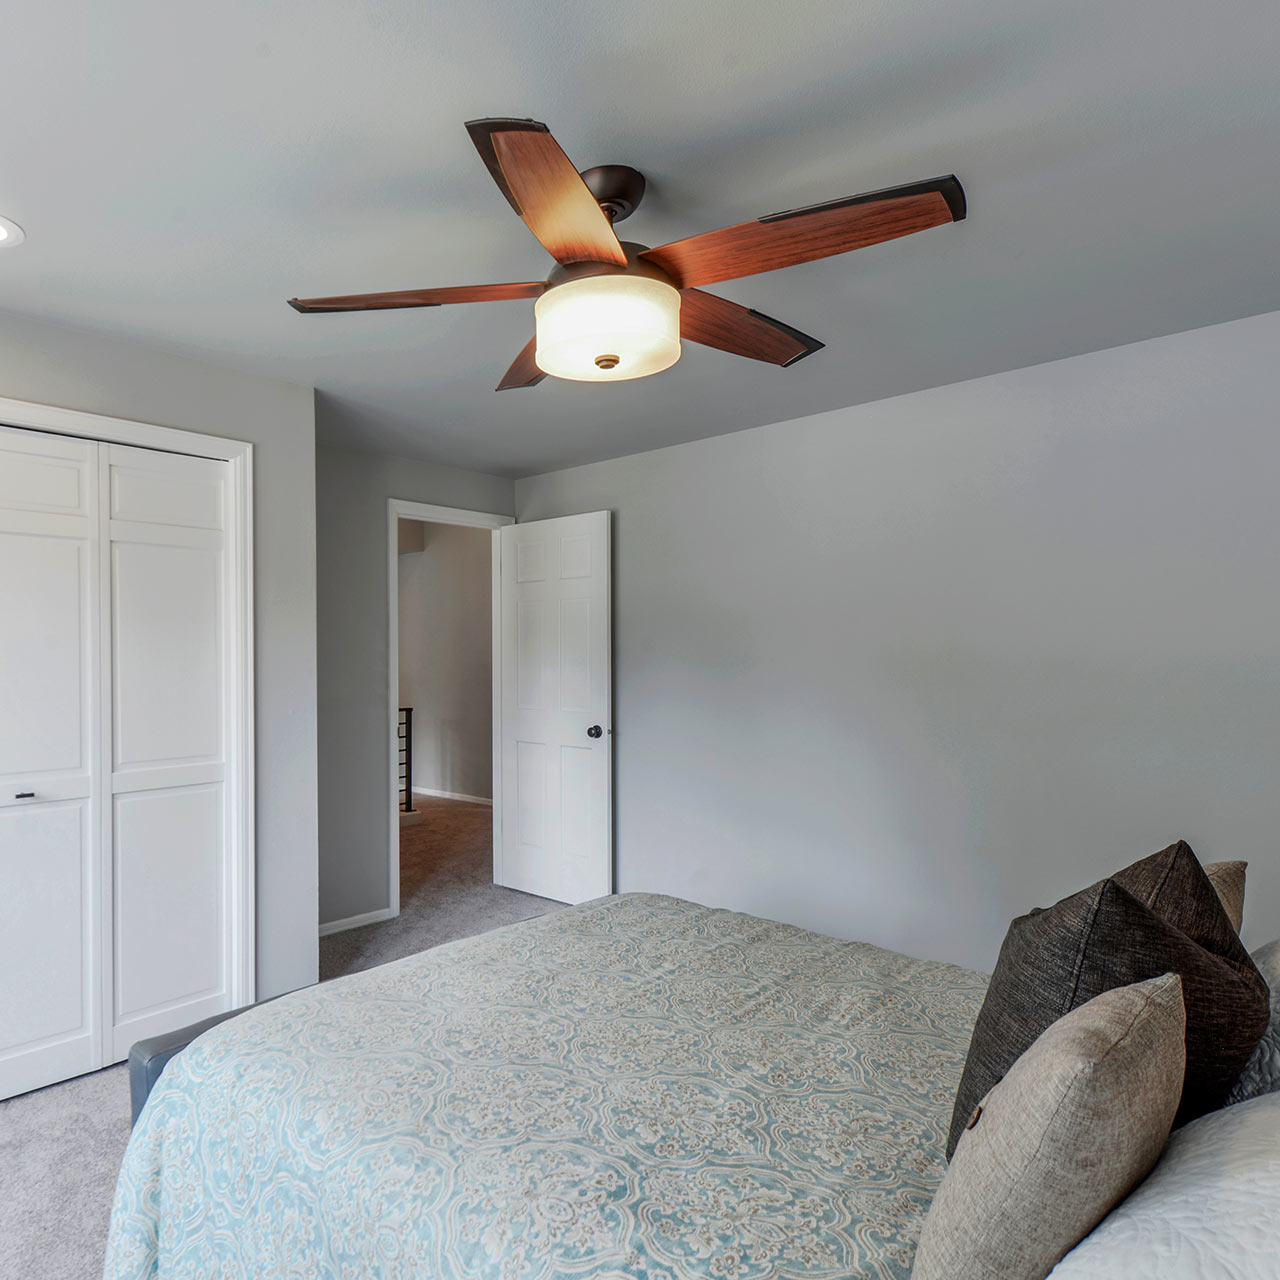 Simple bedroom interior design with a ornamental ceiling fans and hi-tech silent fan designs